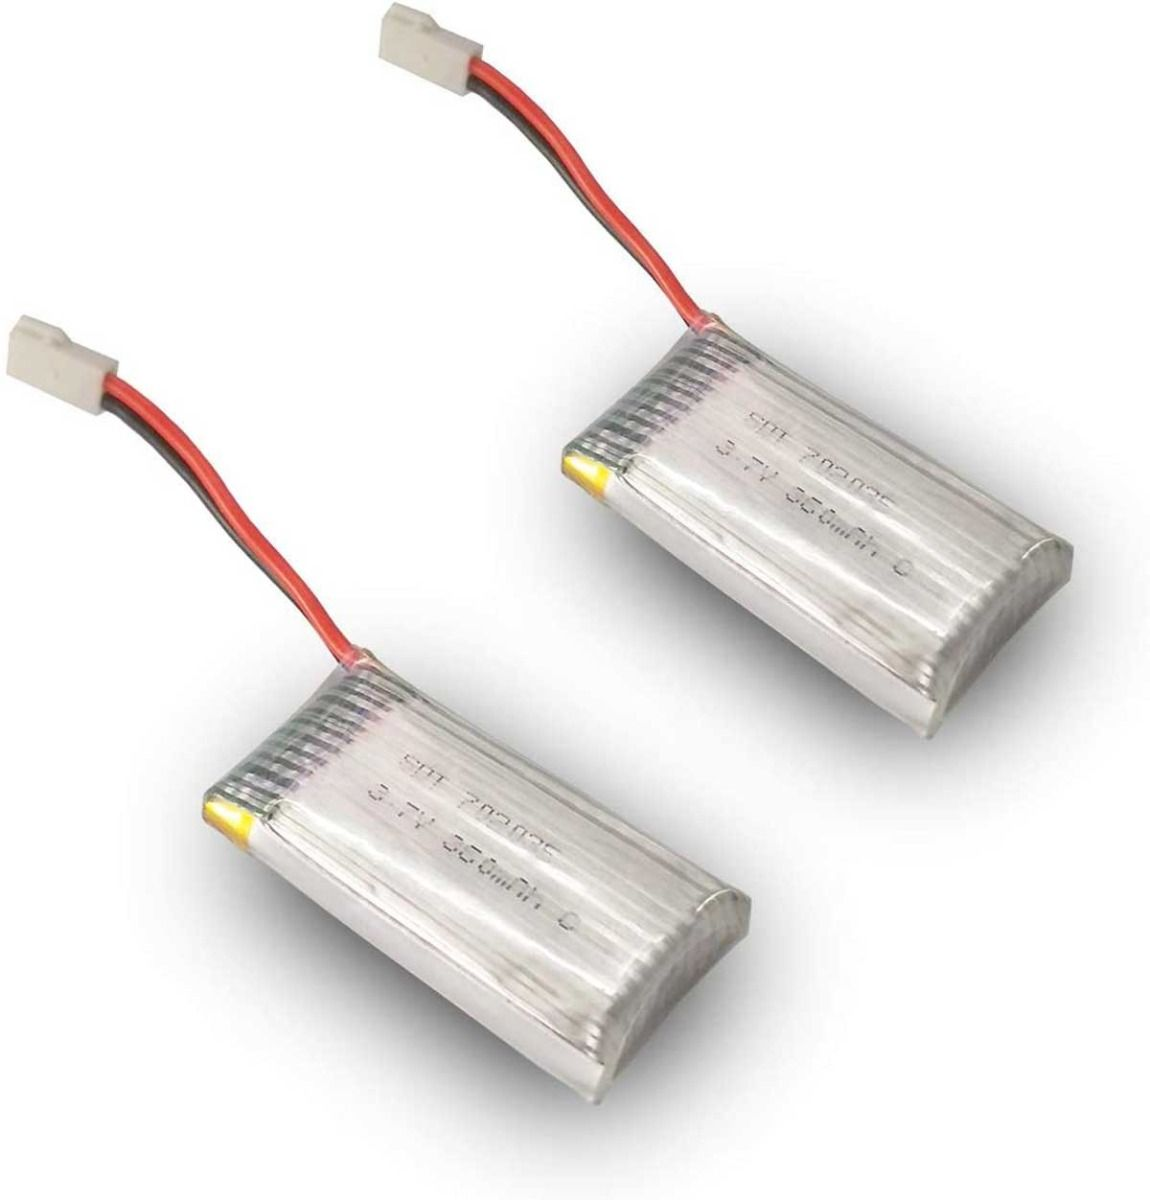 2pcs 3.7V 360mAh Lipo Rechargeable Battery for RC Airplane 761-2, 761-2W, 761-3, 761-4, 761-5, 761-7 Default